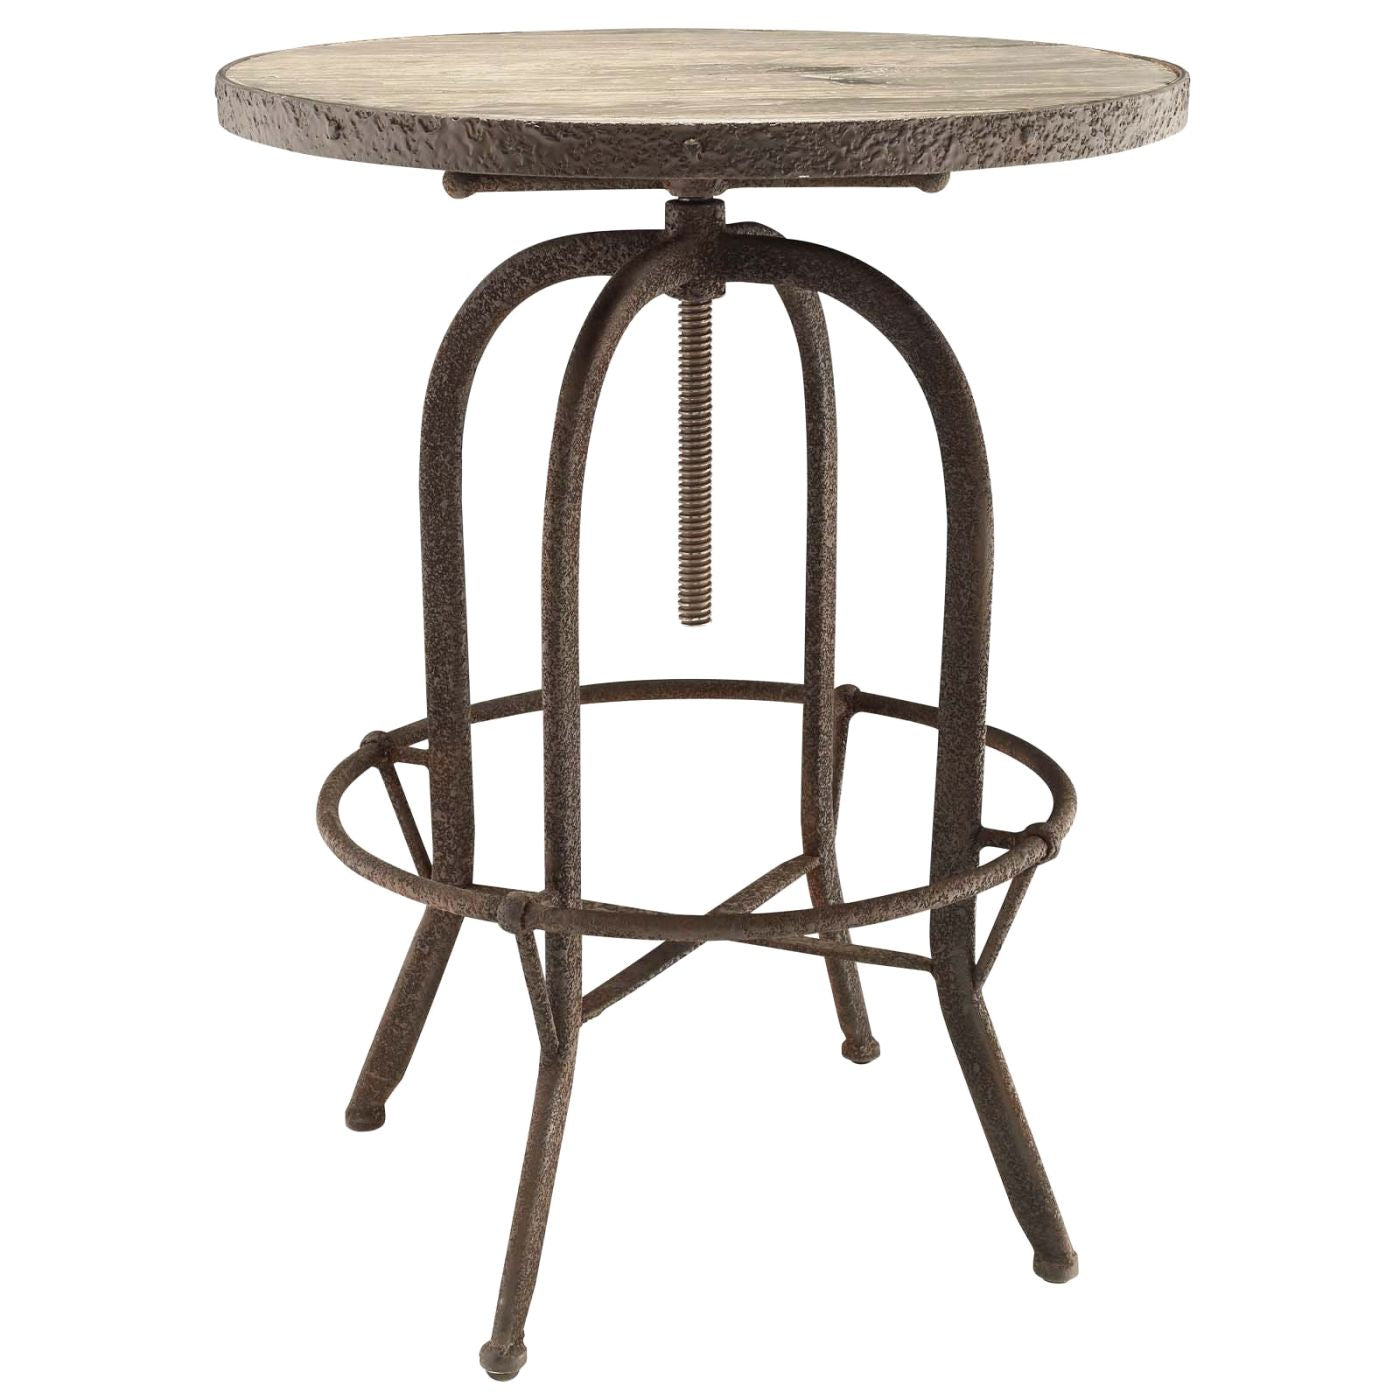 Surprising Modway Bar Tables On Sale Eei 1200 Brn Sylvan Industrial Modern Wood Top Bar Table Only Only 387 05 At Contemporary Furniture Warehouse Unemploymentrelief Wooden Chair Designs For Living Room Unemploymentrelieforg